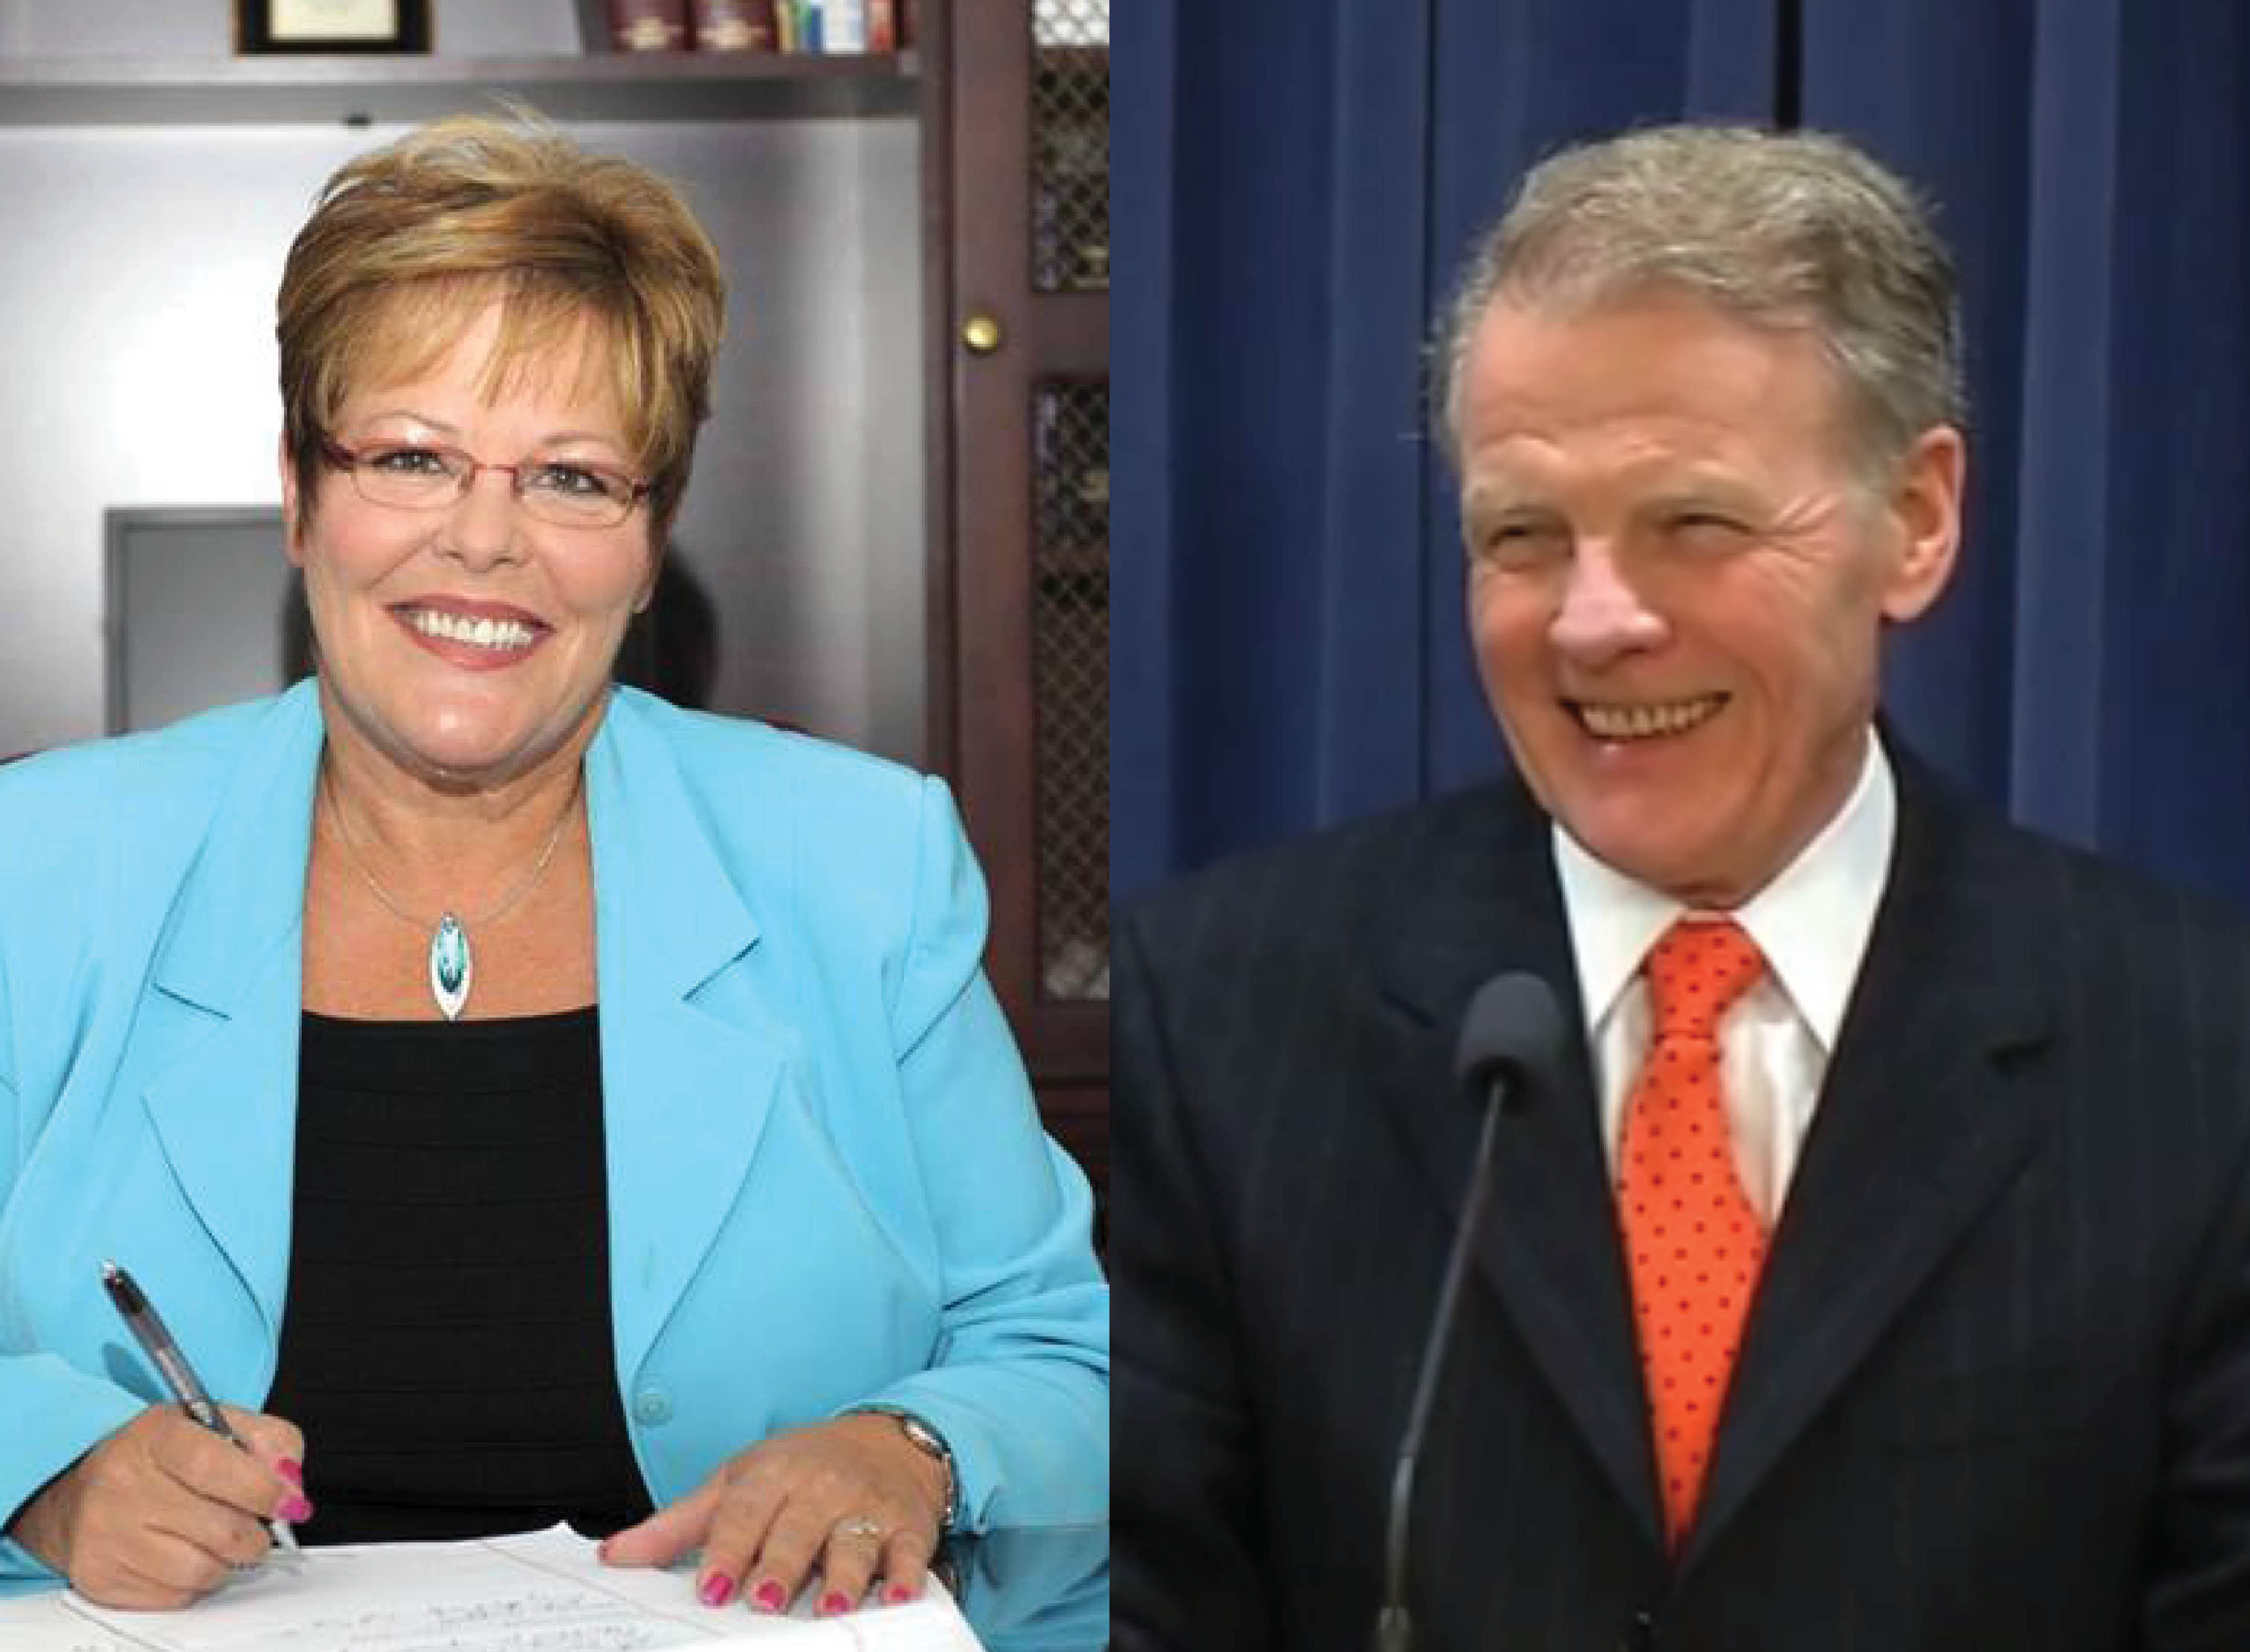 Kankakee State House candidate Lisa Dugan has received a total of $582,078 from House Speaker Michael Madigan.